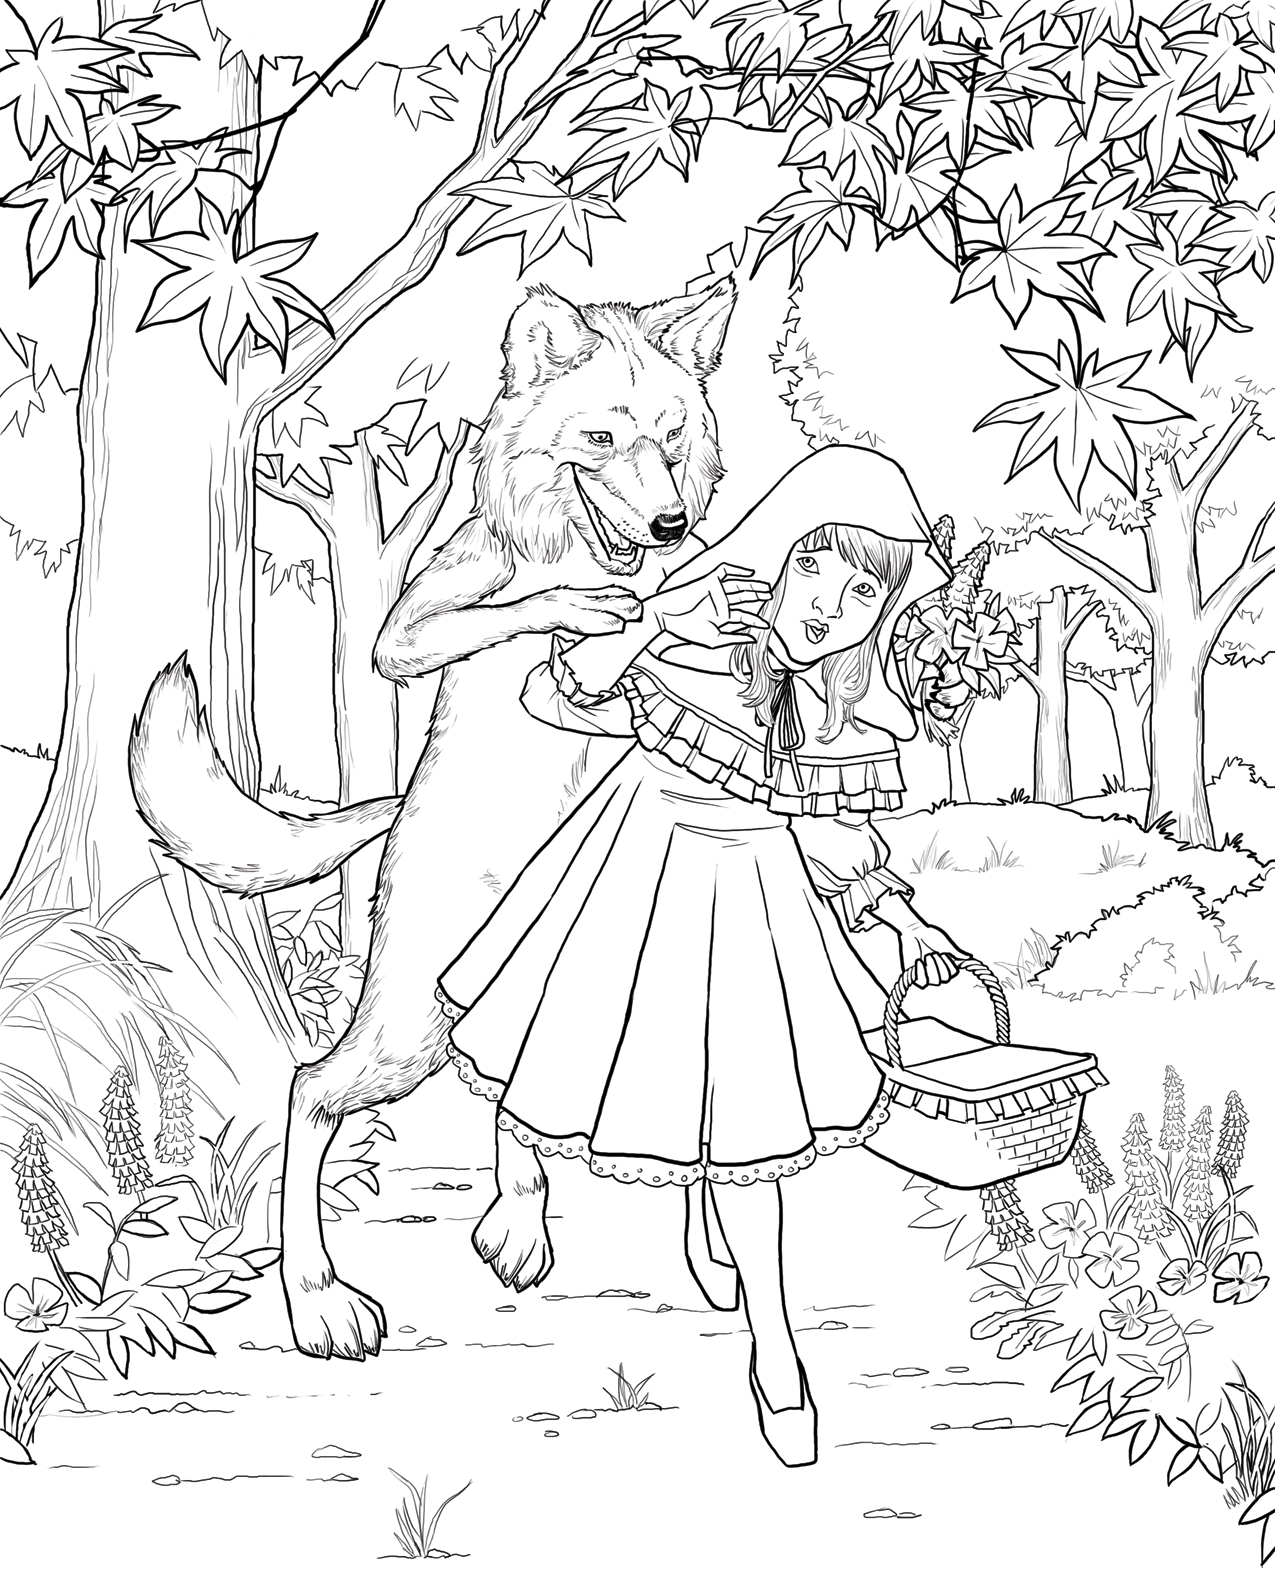 red riding hood coloring pages - photo#17